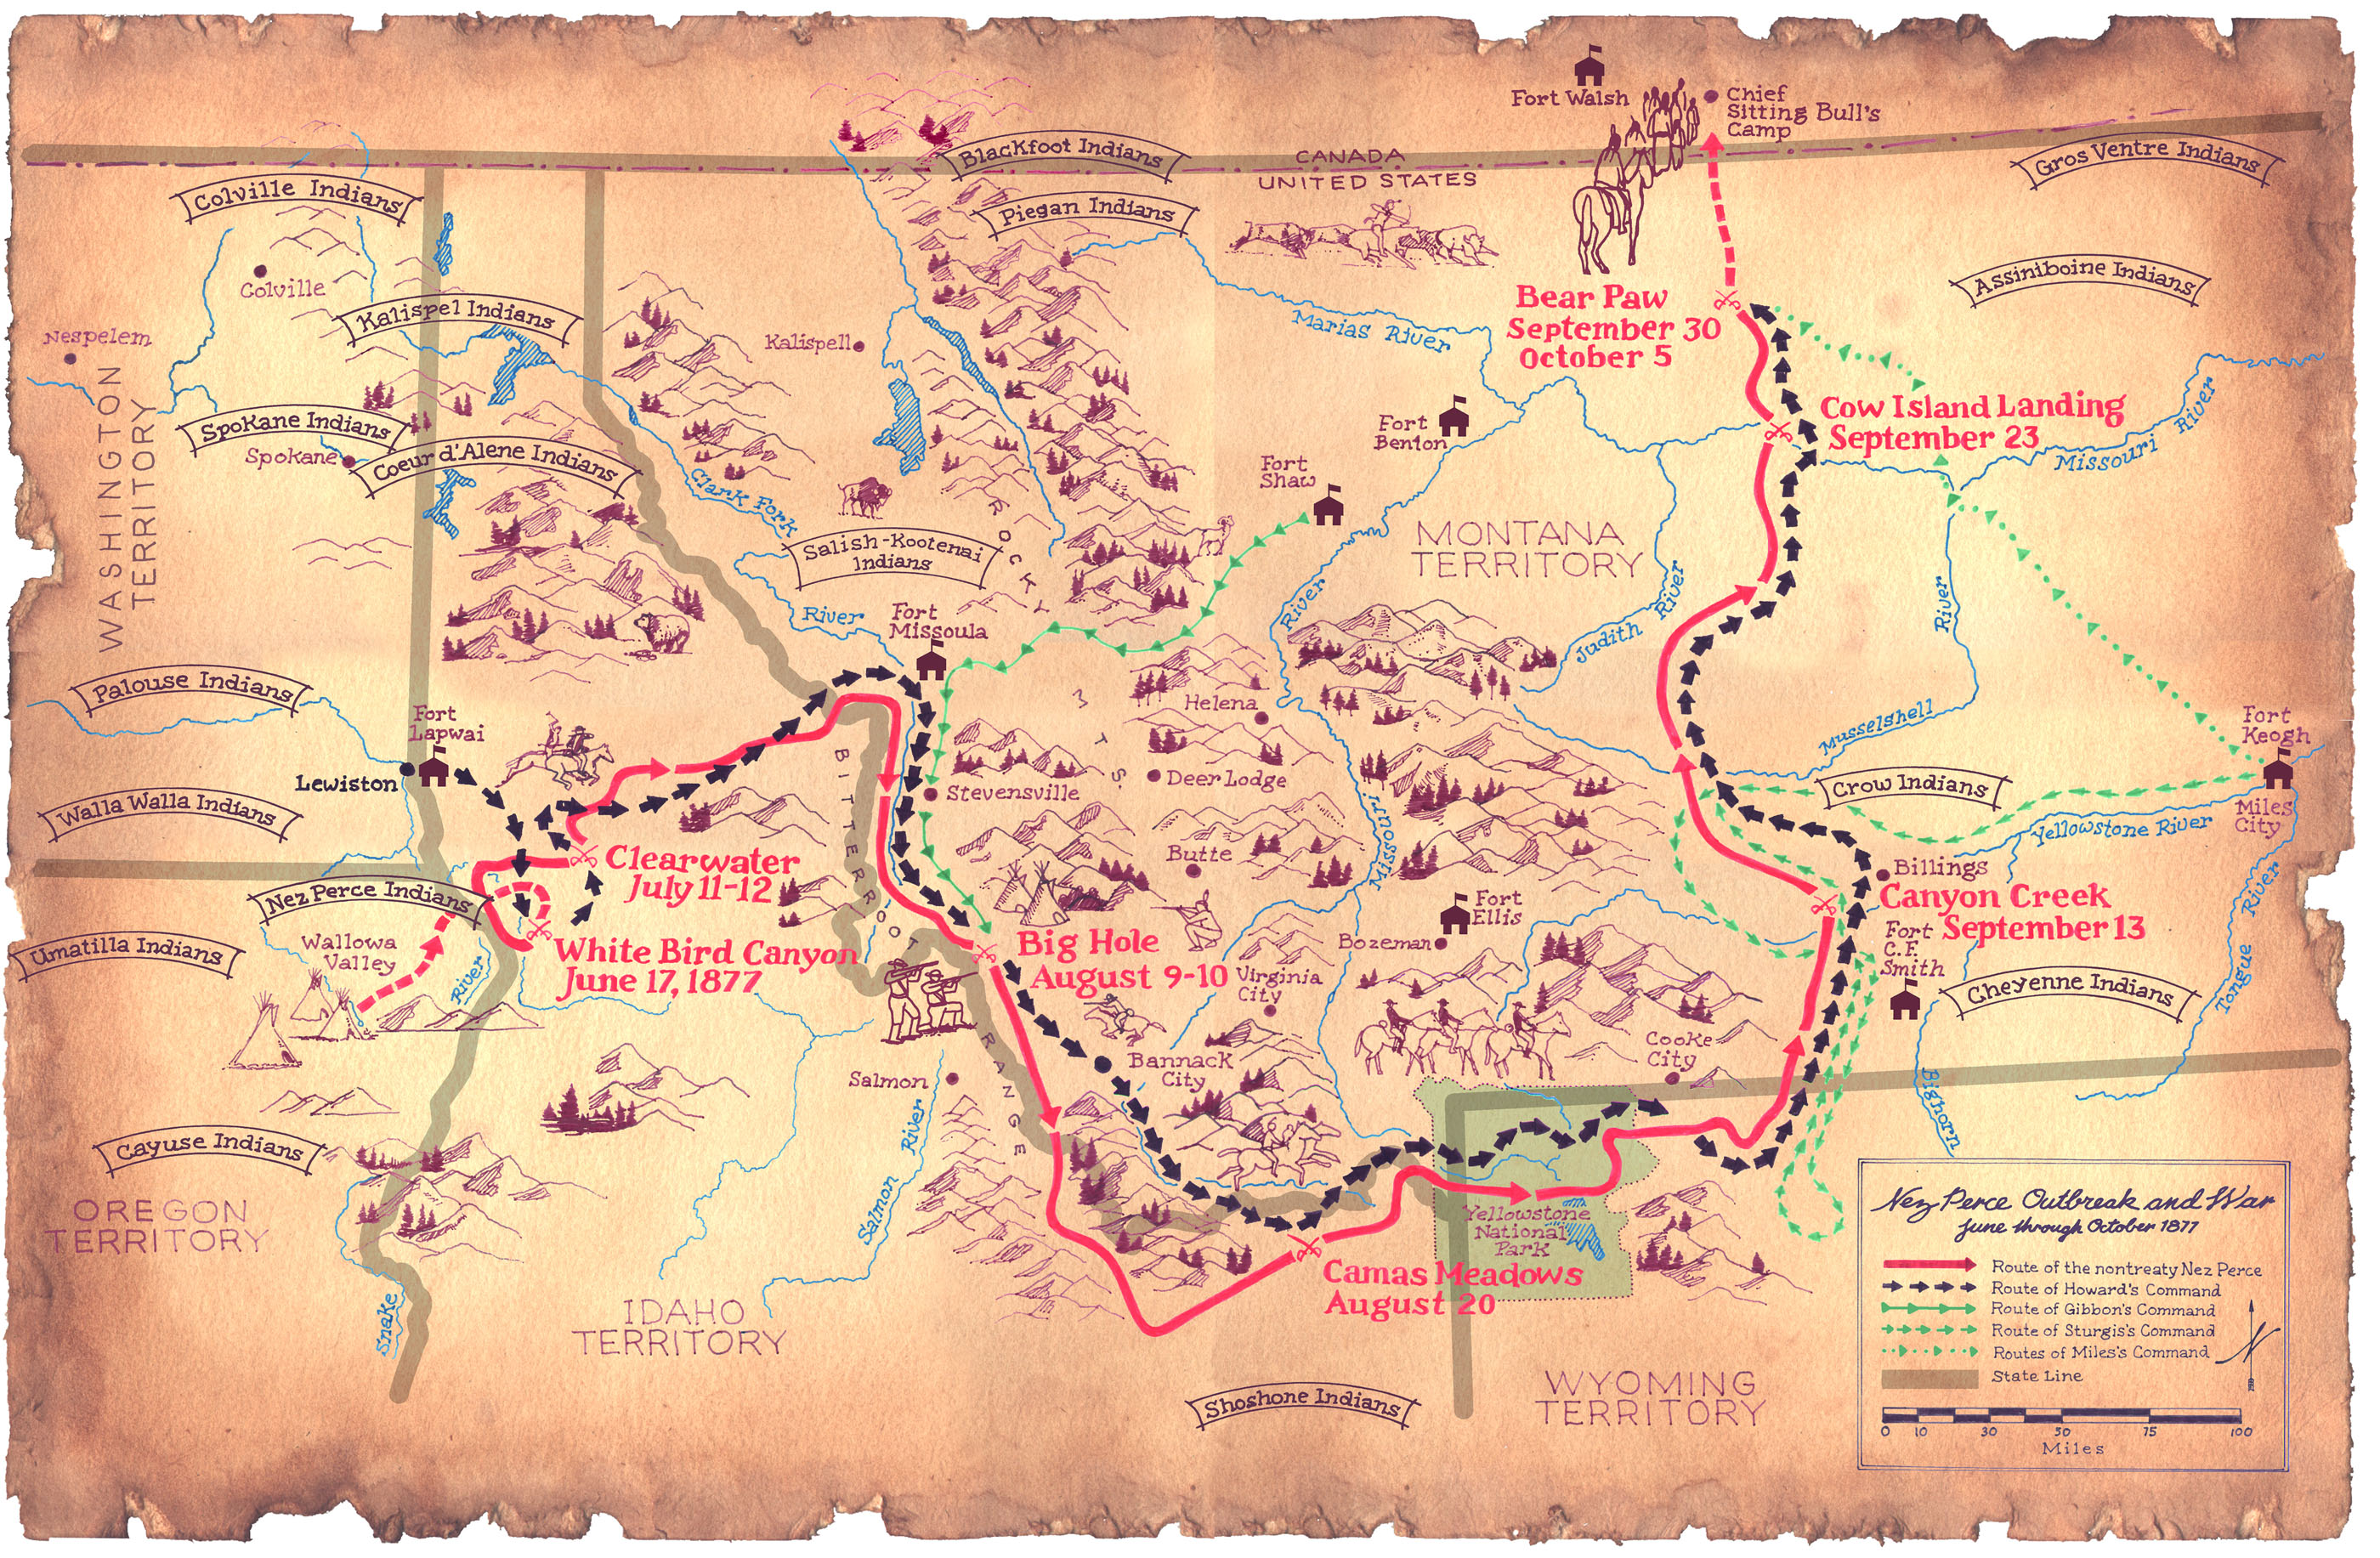 Map of the flight of the Nez Perce and key battle sites of the Nez Perce War, 1877.